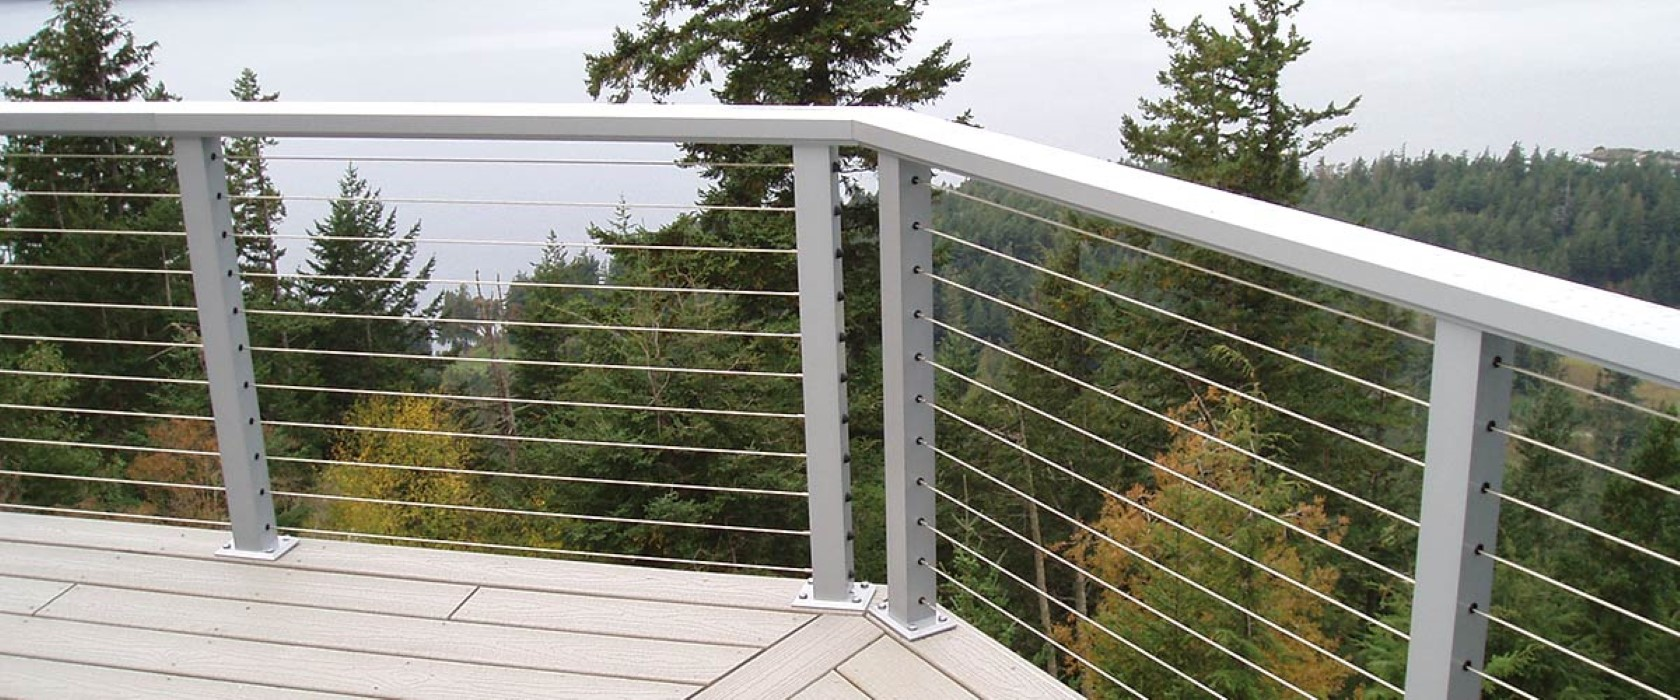 steel cable railing. Steel Cable Railing T